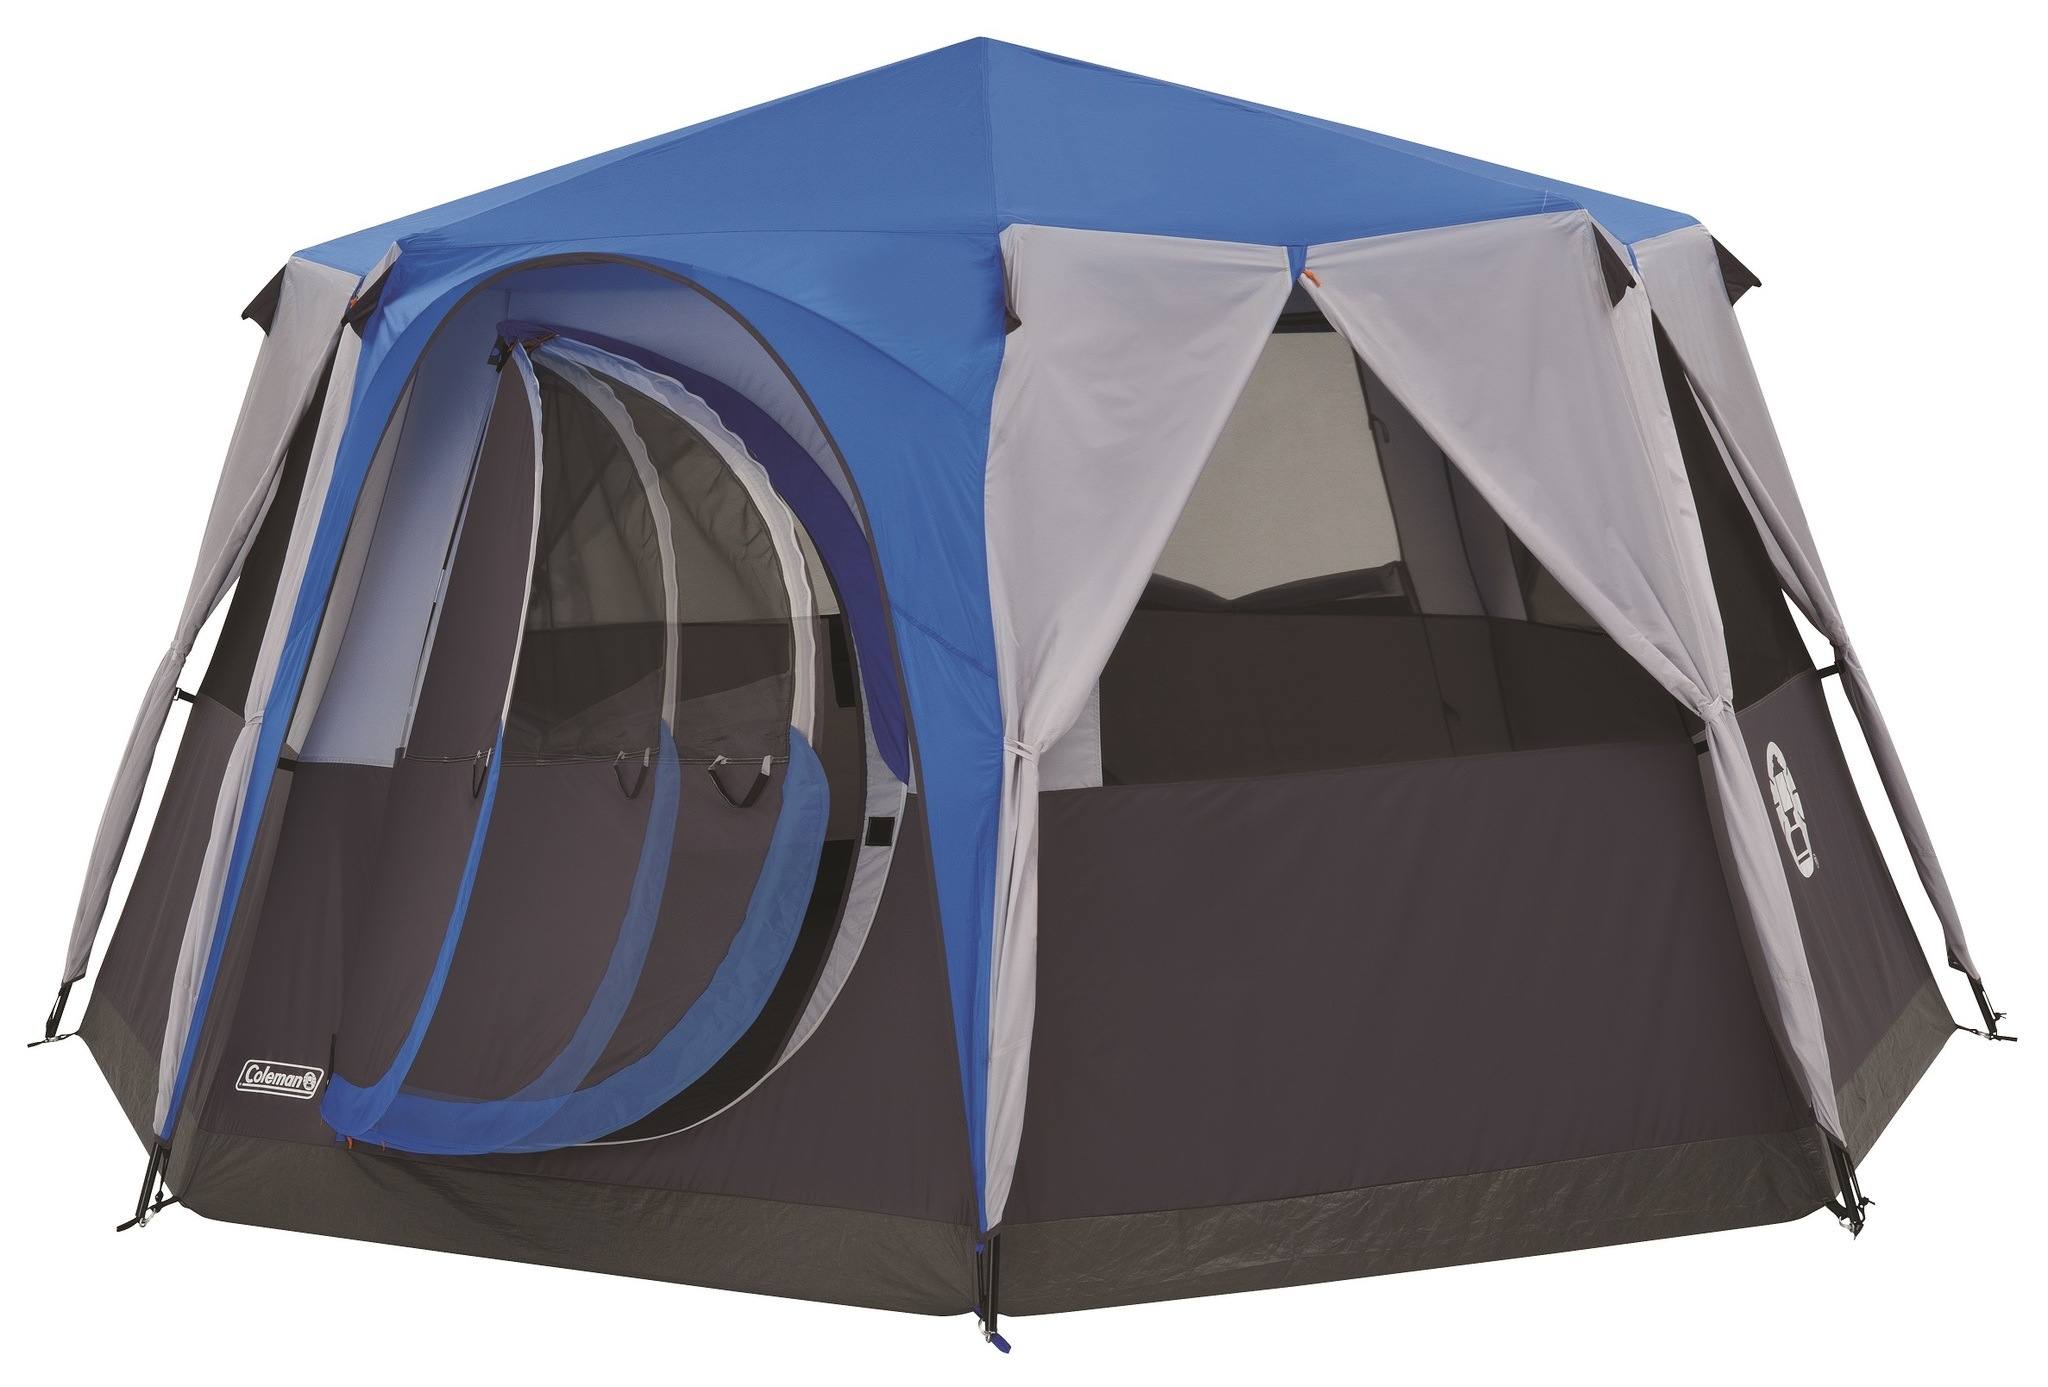 Tent with blinds open